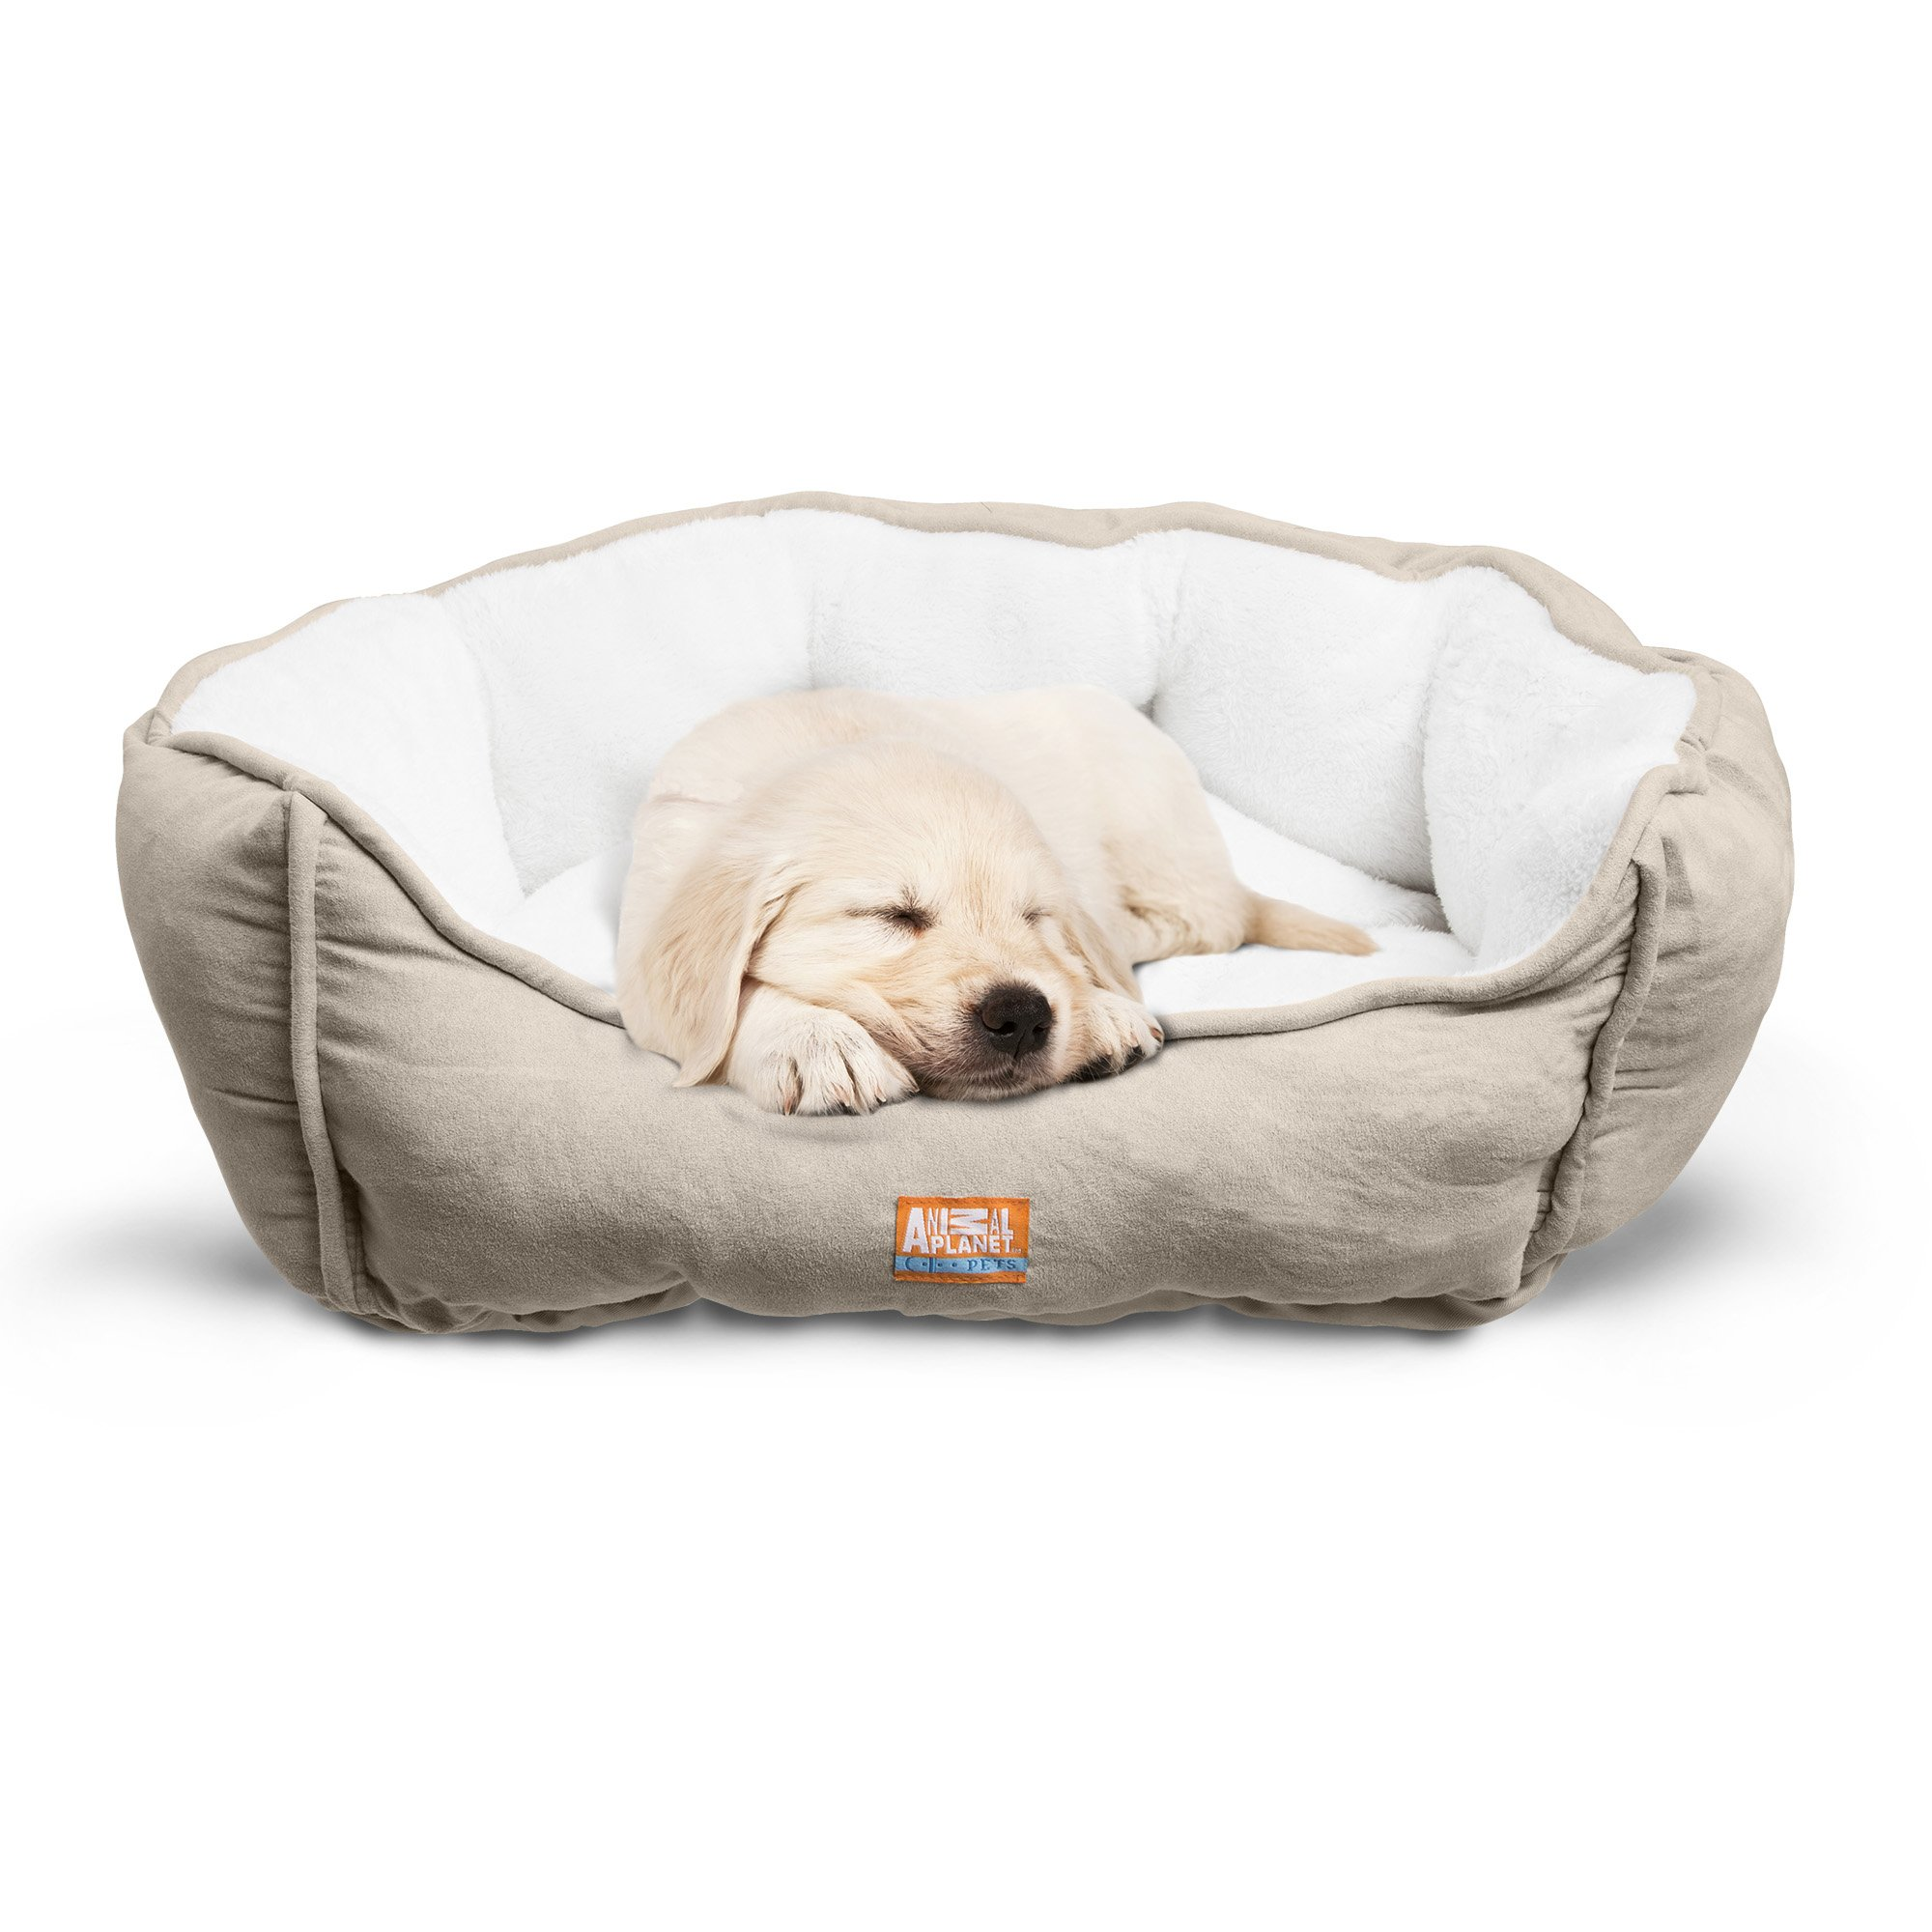 "Animal Planet Round Plush Micro Suede & Sherpa Bolster Pet Bed Dogs & Cats, Puppies Small & Toy Breeds; Cuddly Warm Burrowing Snuggling, Easy-to-Clean 24""x 17""x 9"" TAN"